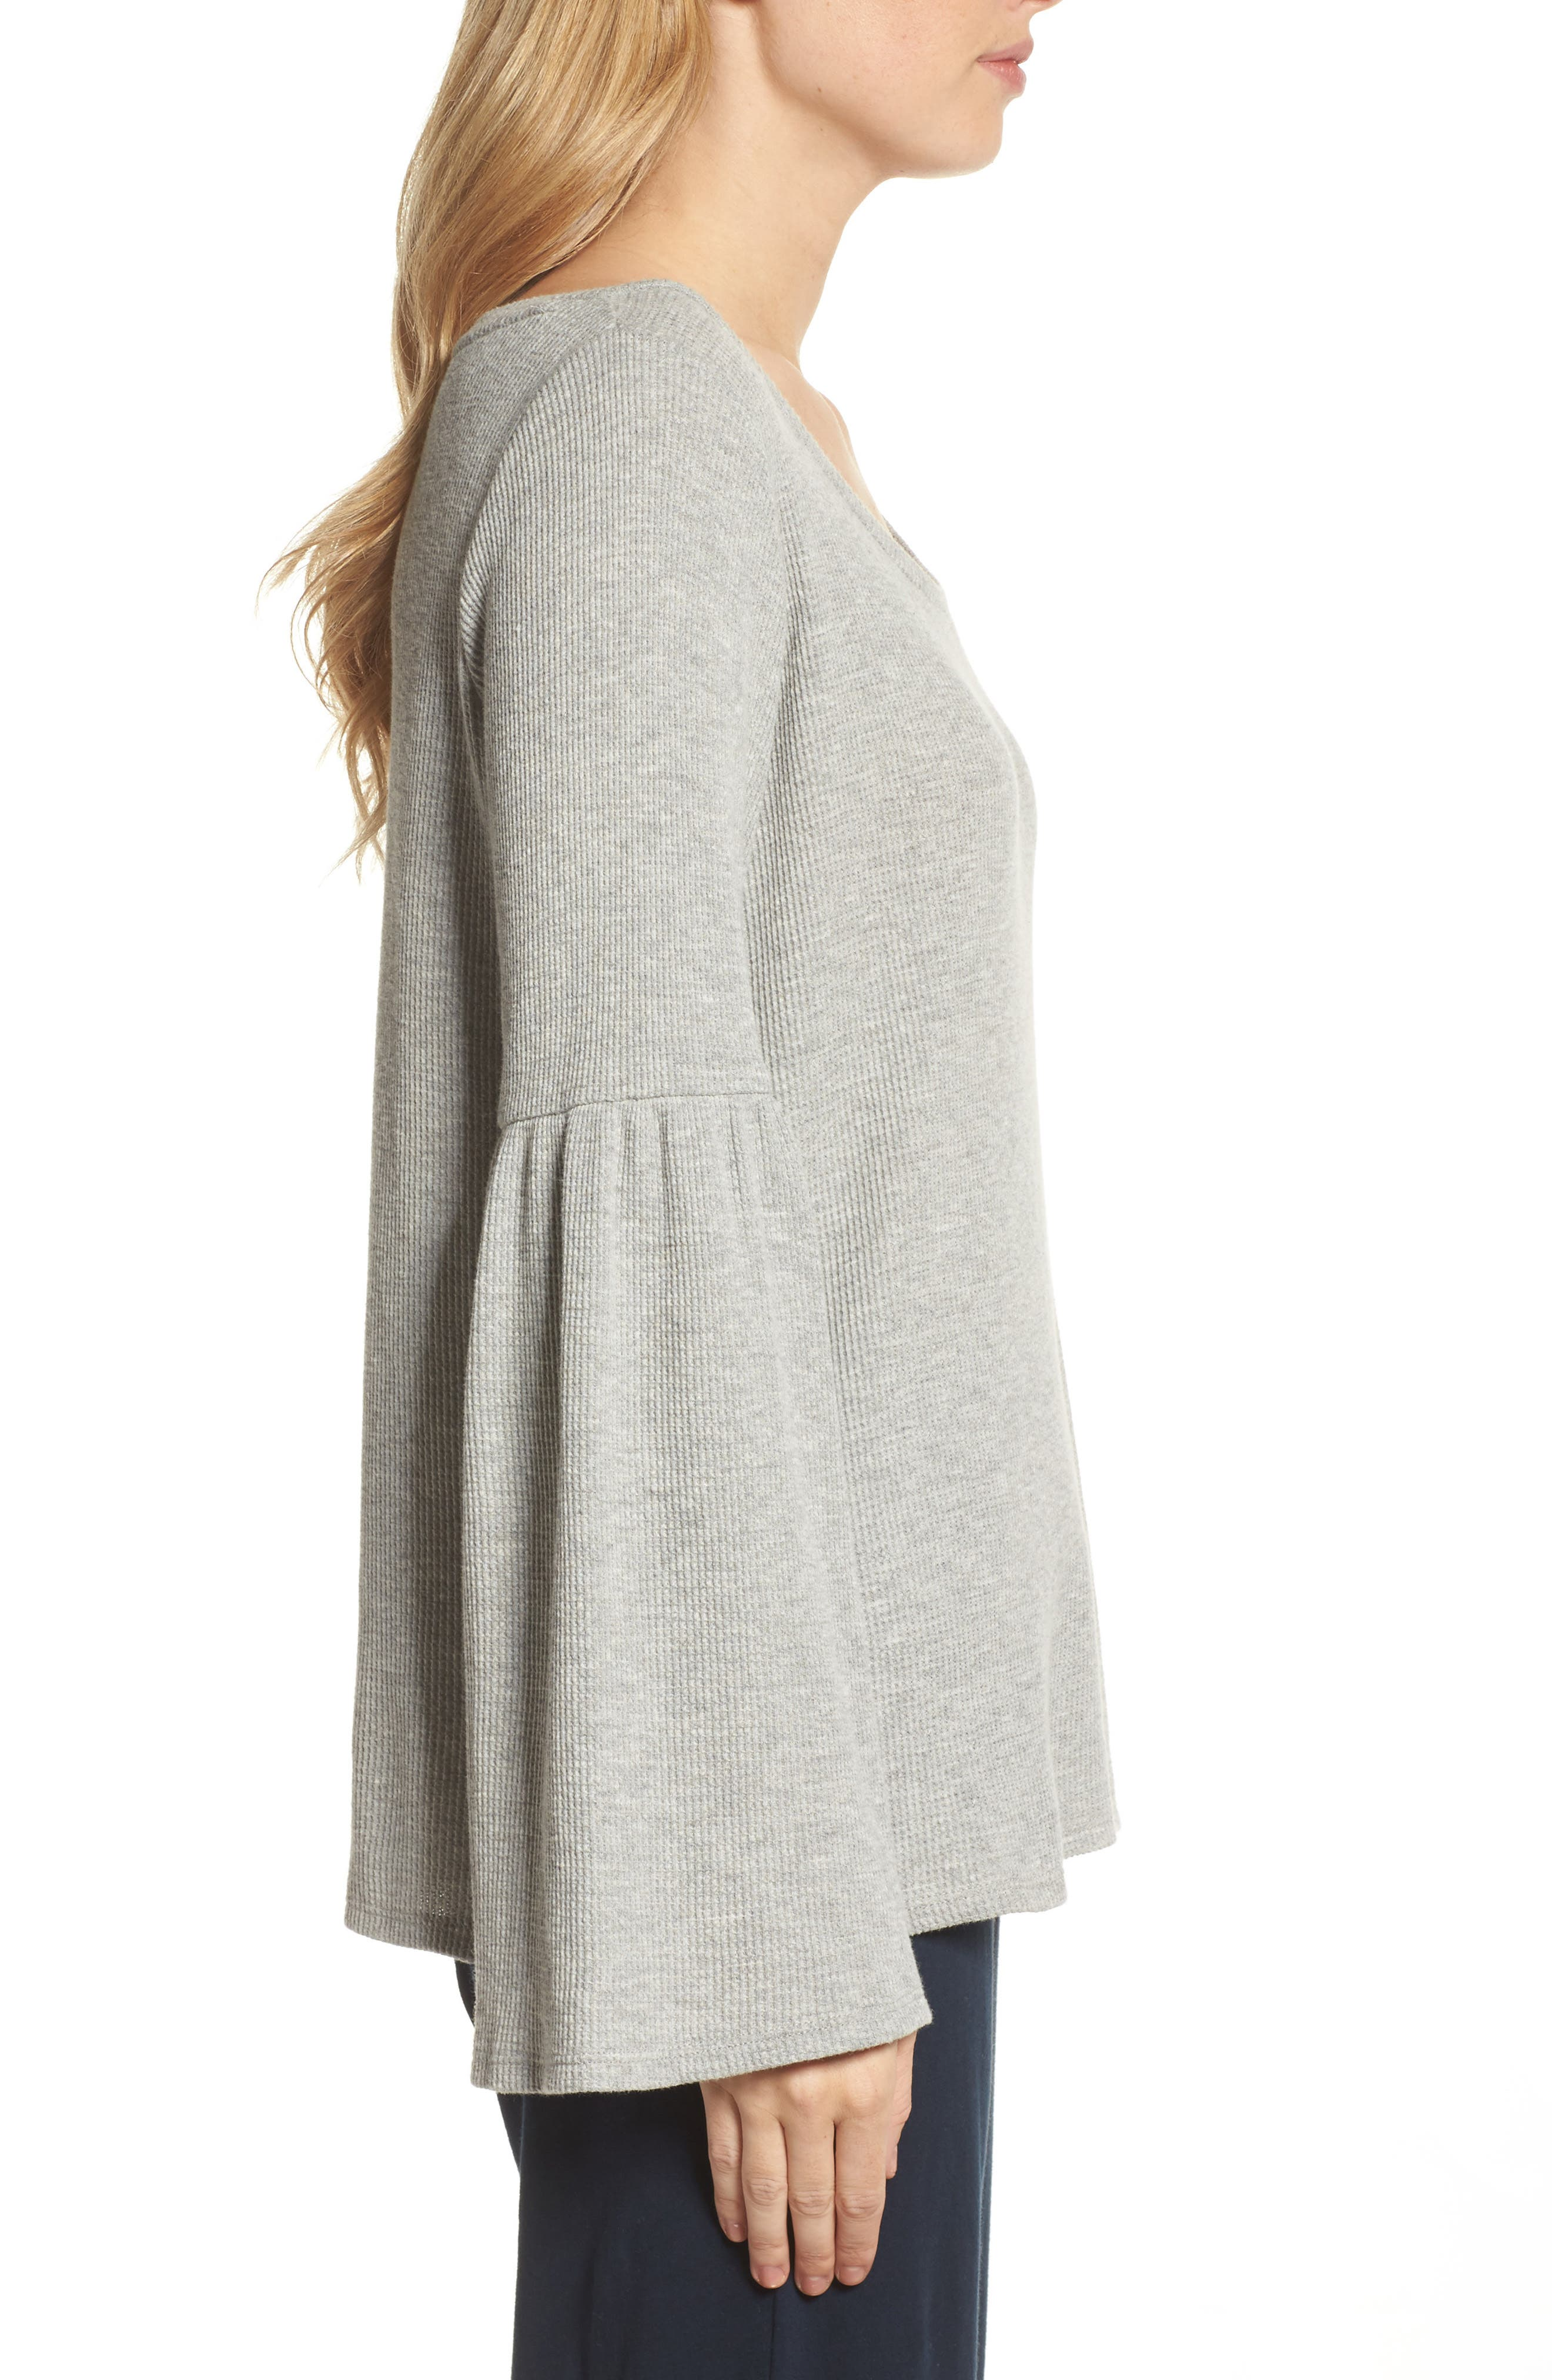 Imo Thermal Knit Tee,                             Alternate thumbnail 3, color,                             Heather Grey